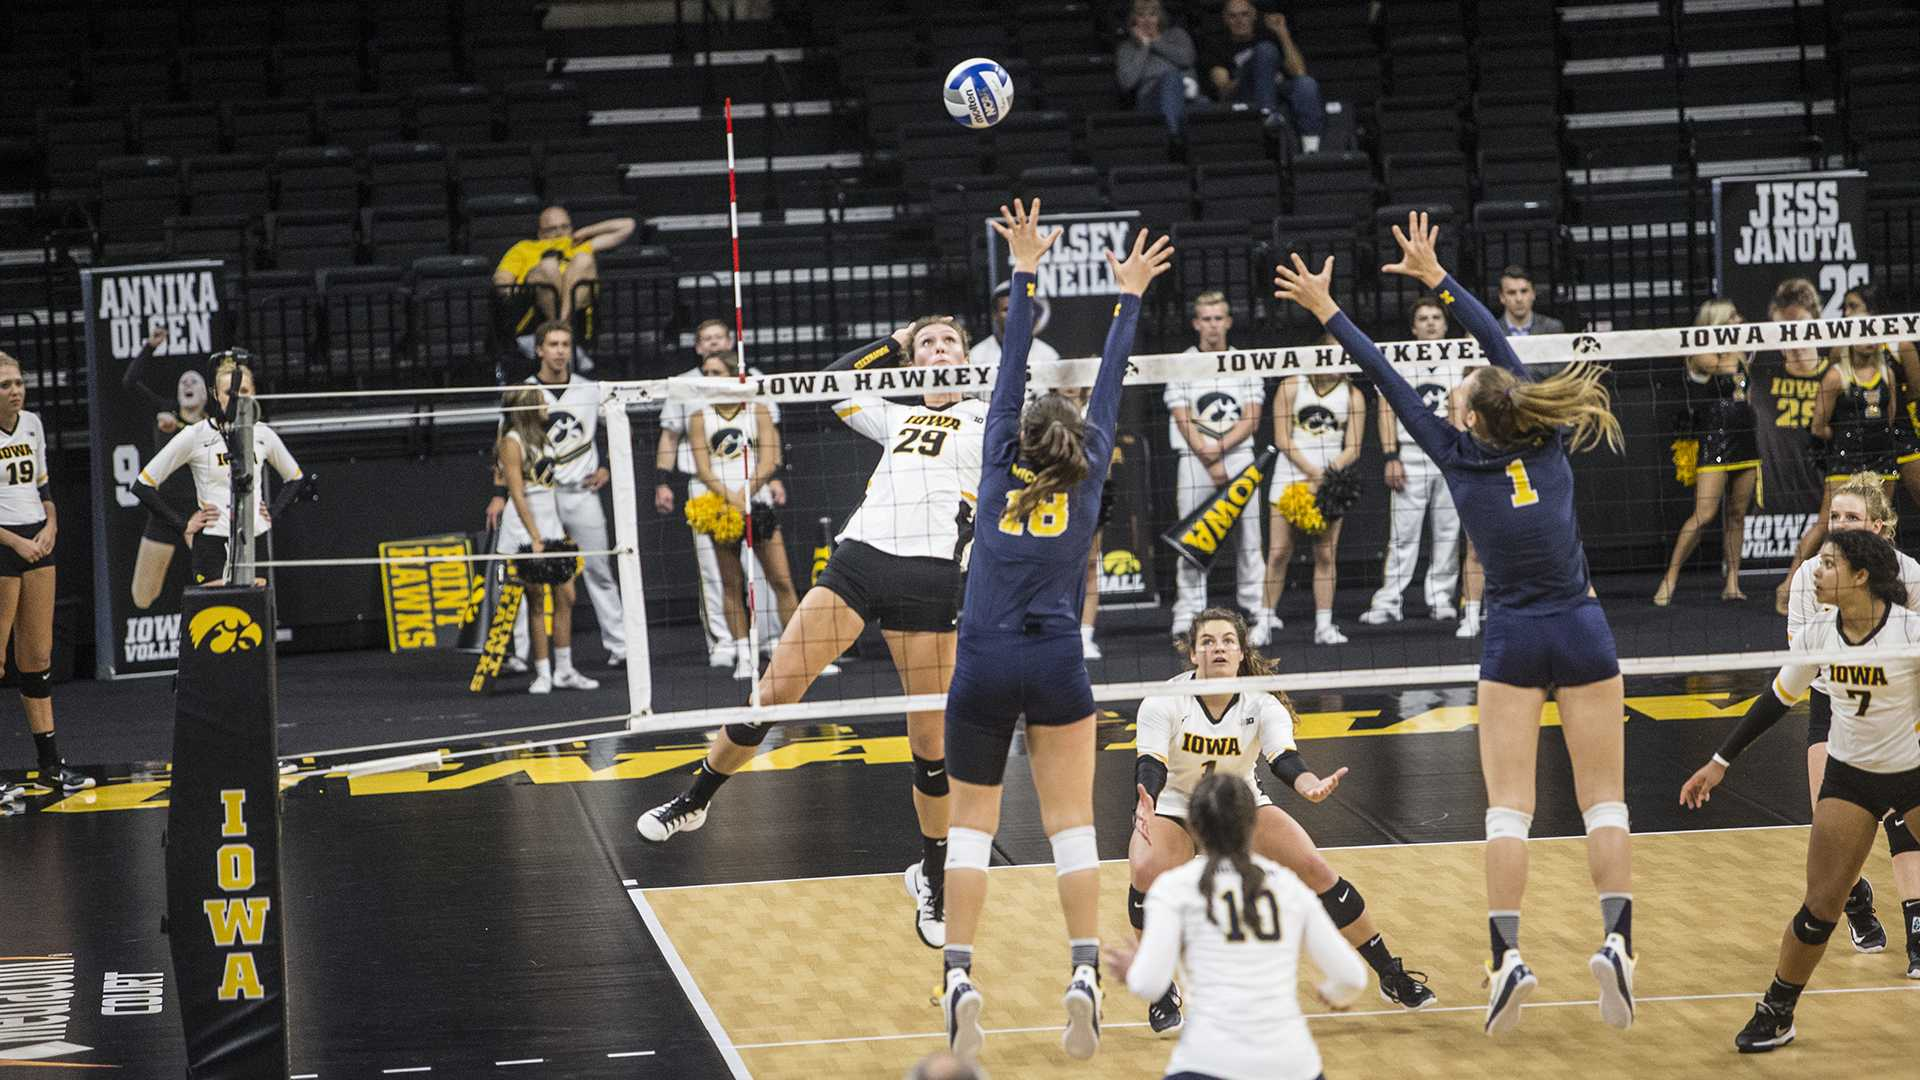 Iowa's Jess Janota spikes the ball during a match at Carver-Hawkeye Arena on Wednesday, Oct. 4, 2017. Iowa defeated Michigan 3 sets to 1. (Nick Rohlman/The Daily Iowan)